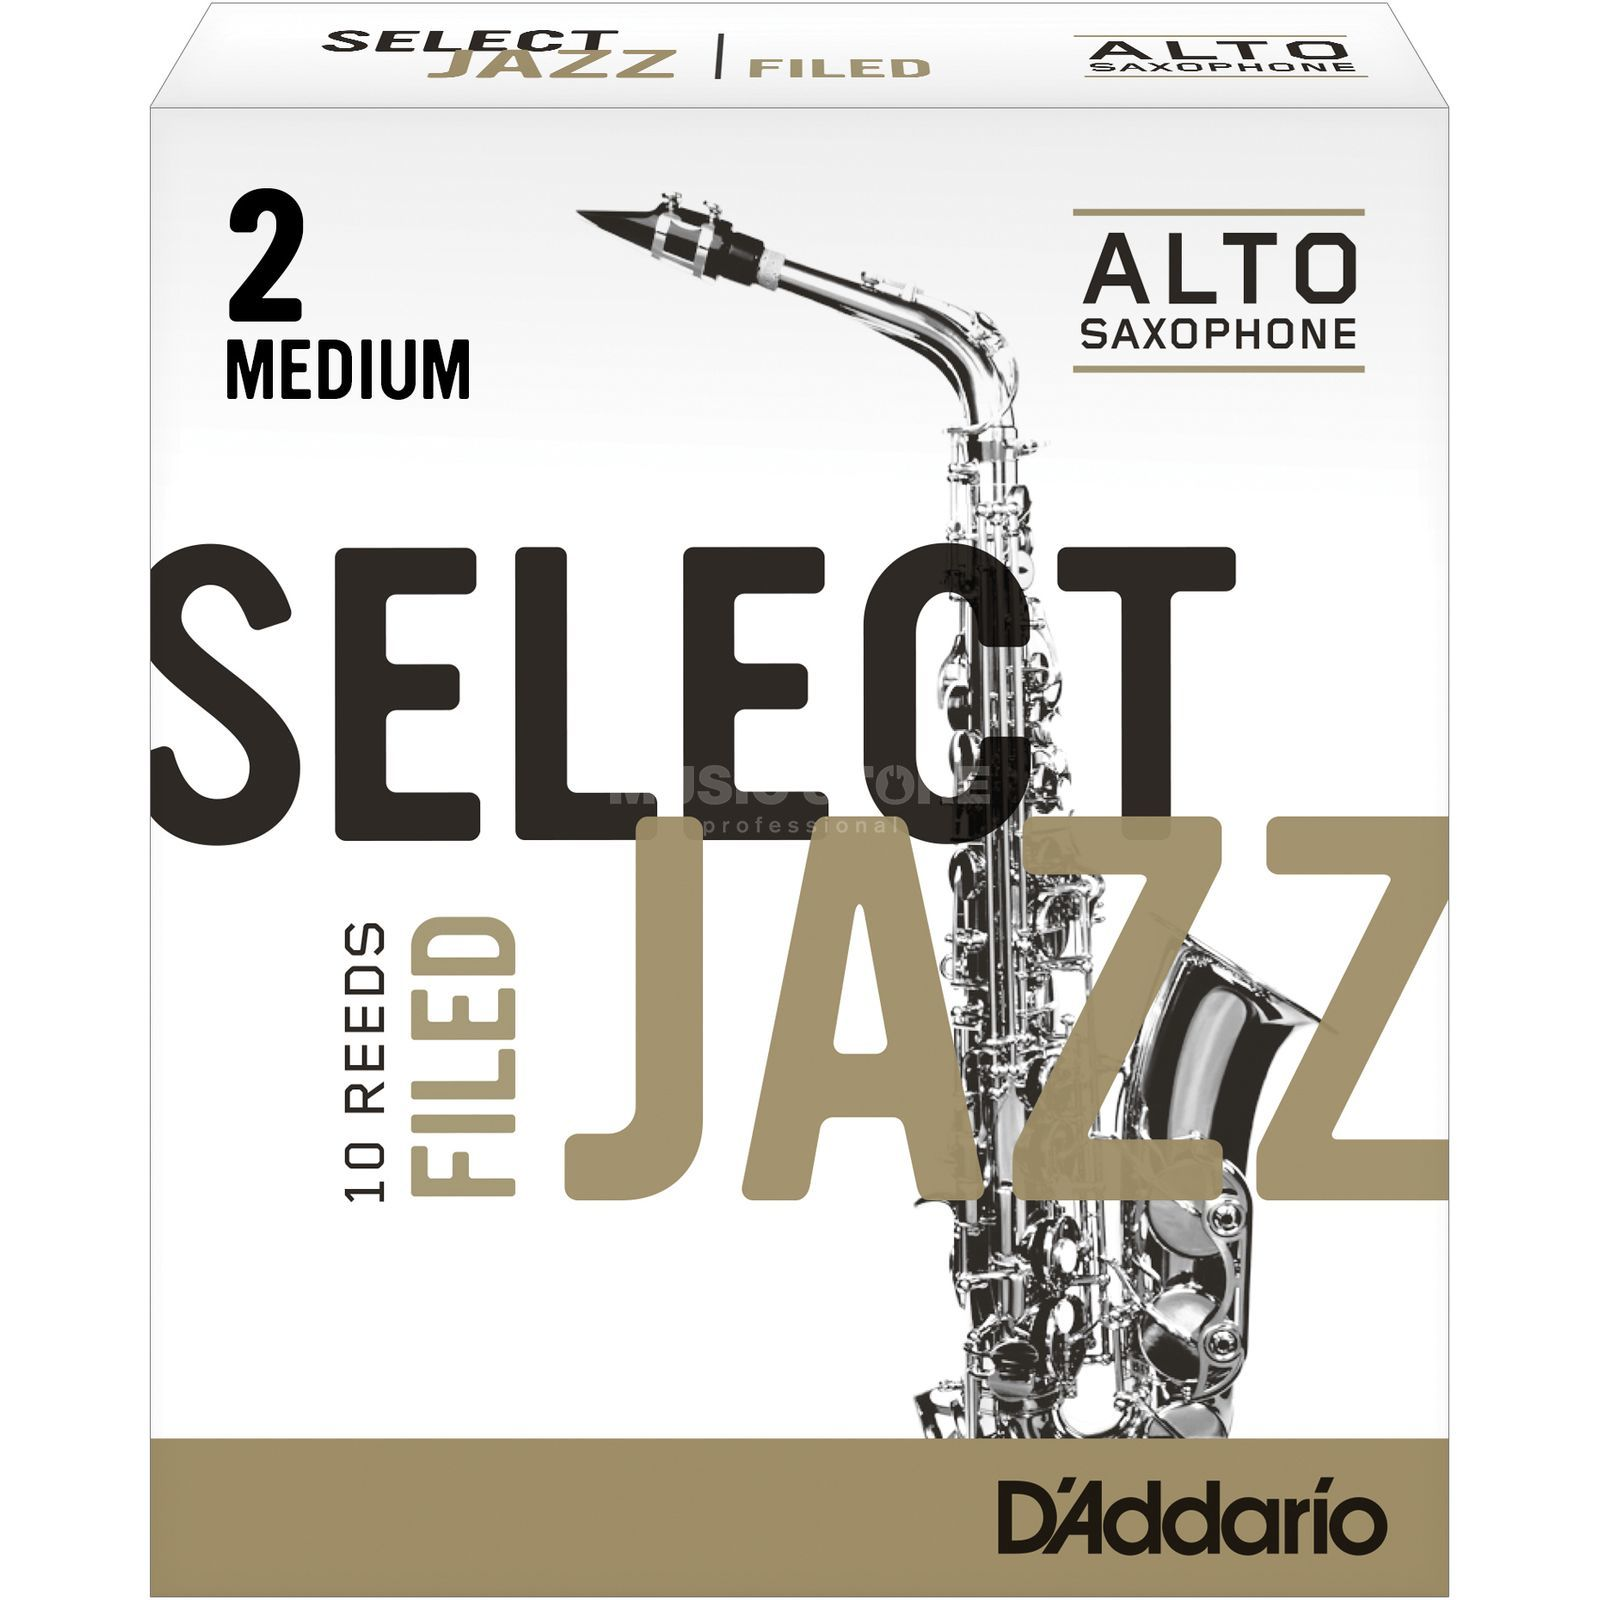 D'Addario Woodwinds Alto Sax Reeds 2M Box of 10 Product Image